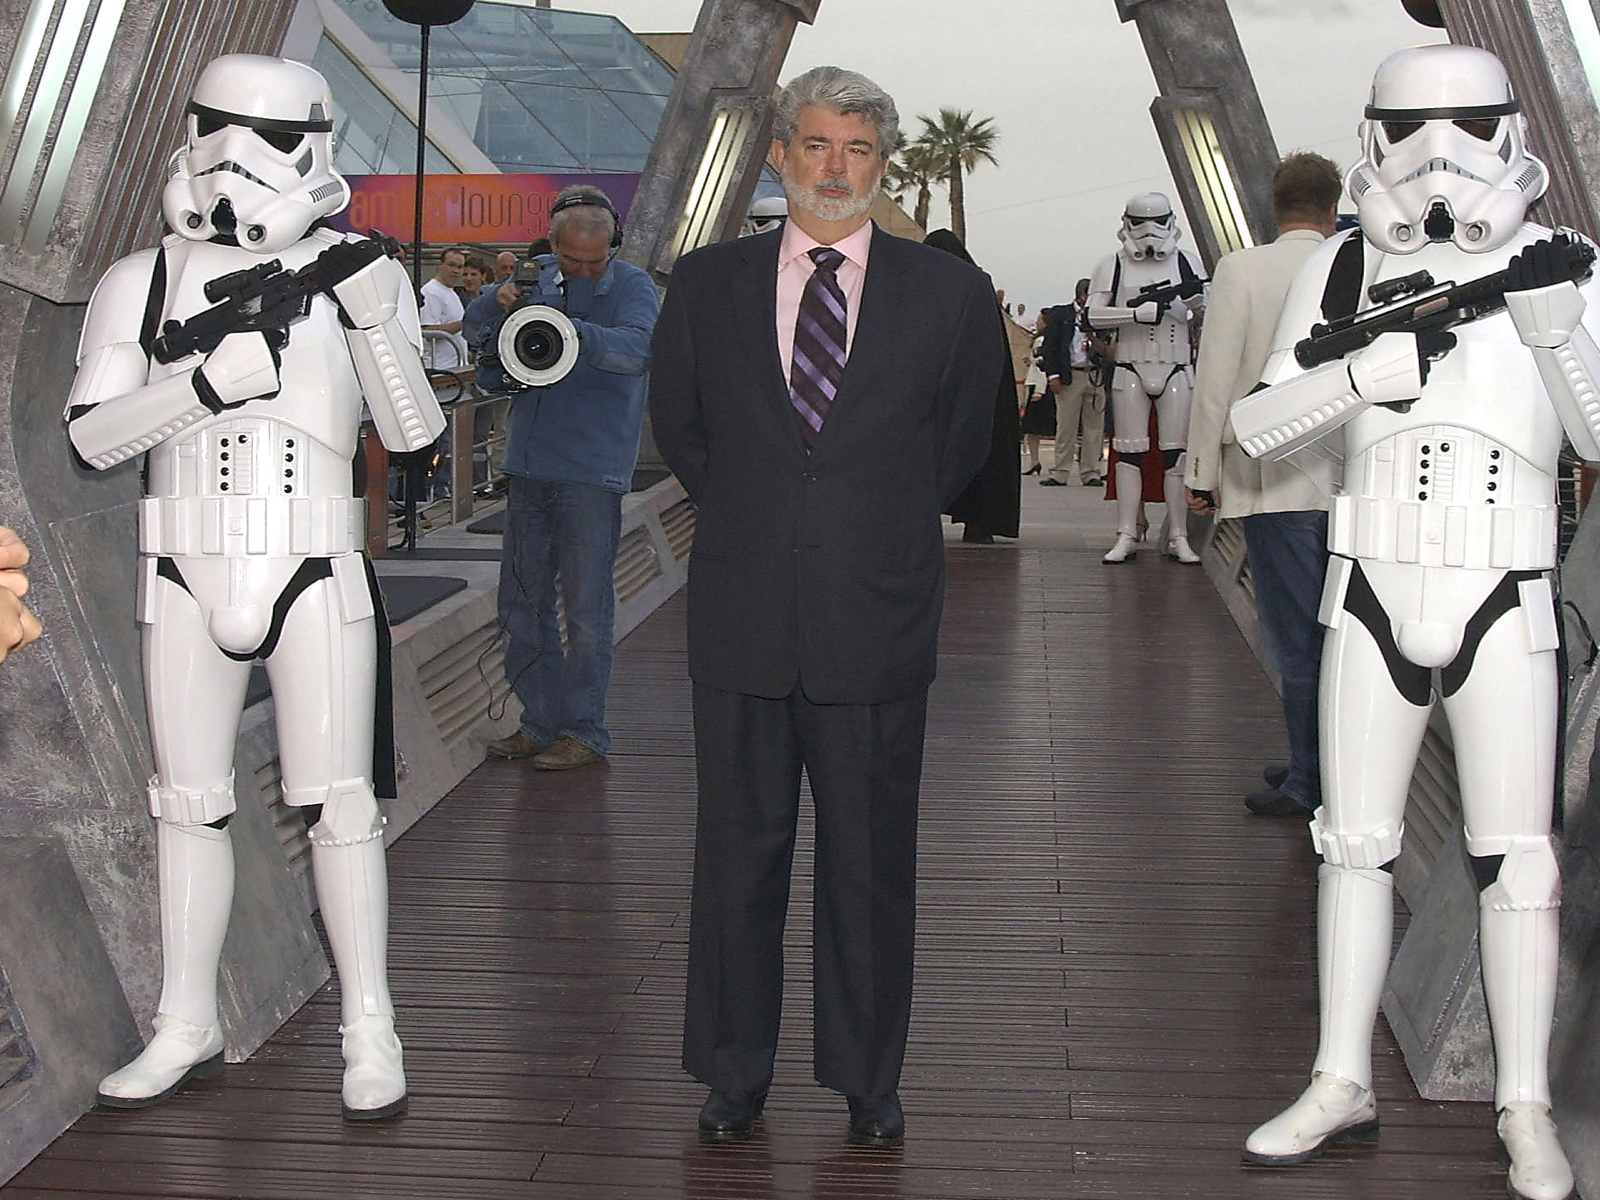 GEORGE LUCAS RECANTS: PREQUEL NEGATIVES TO BE DESTROYED